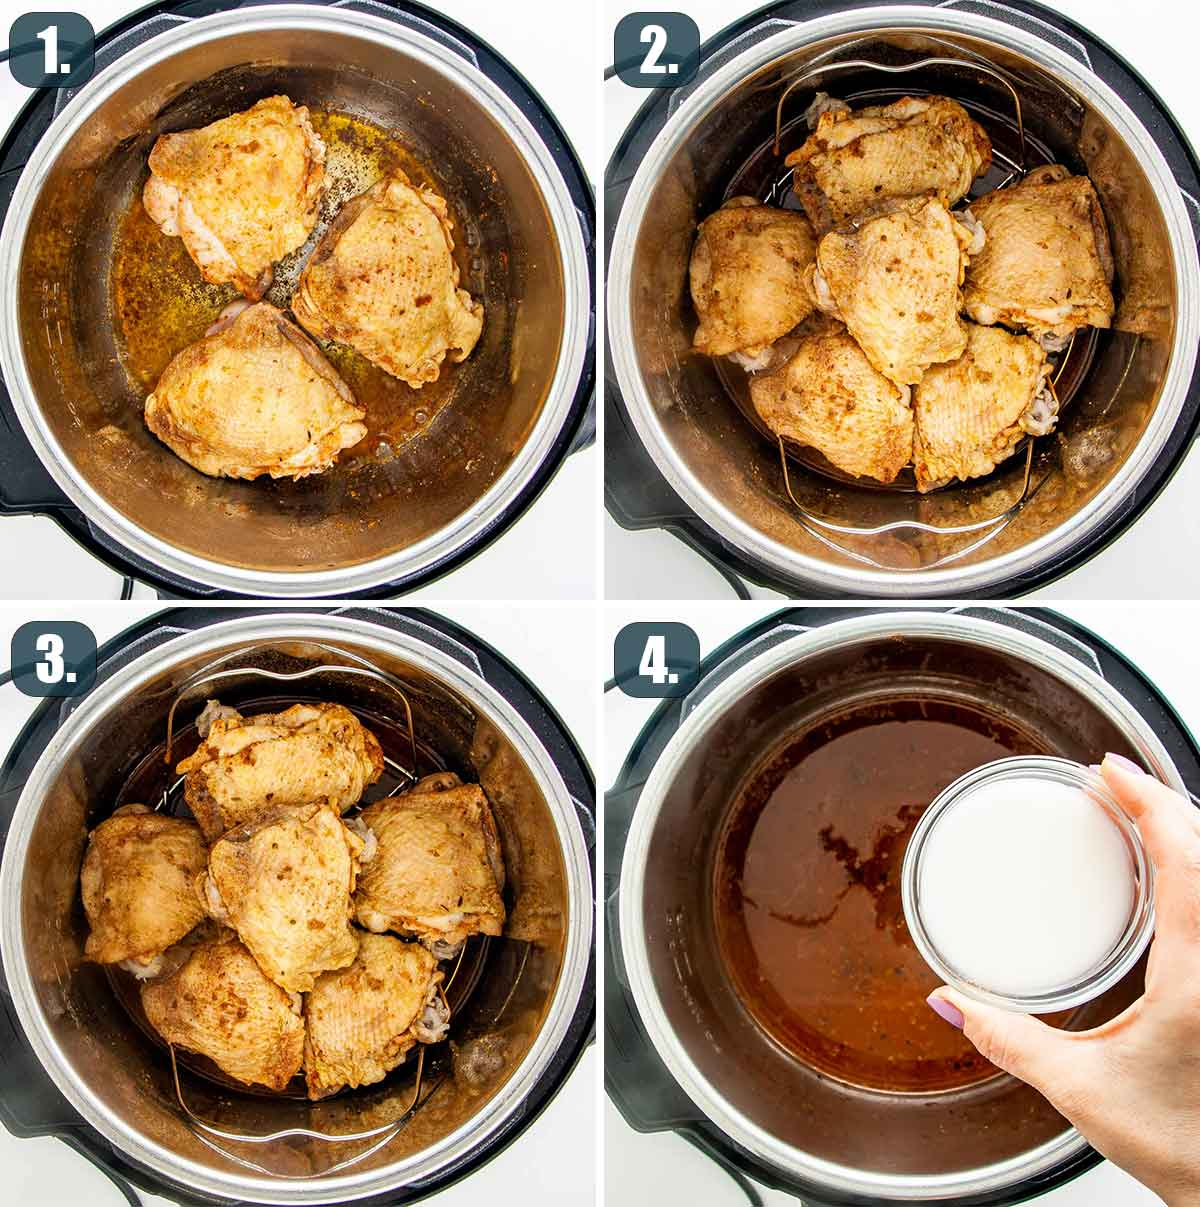 detailed process shots showing how to make chicken thighs in the instant pot.